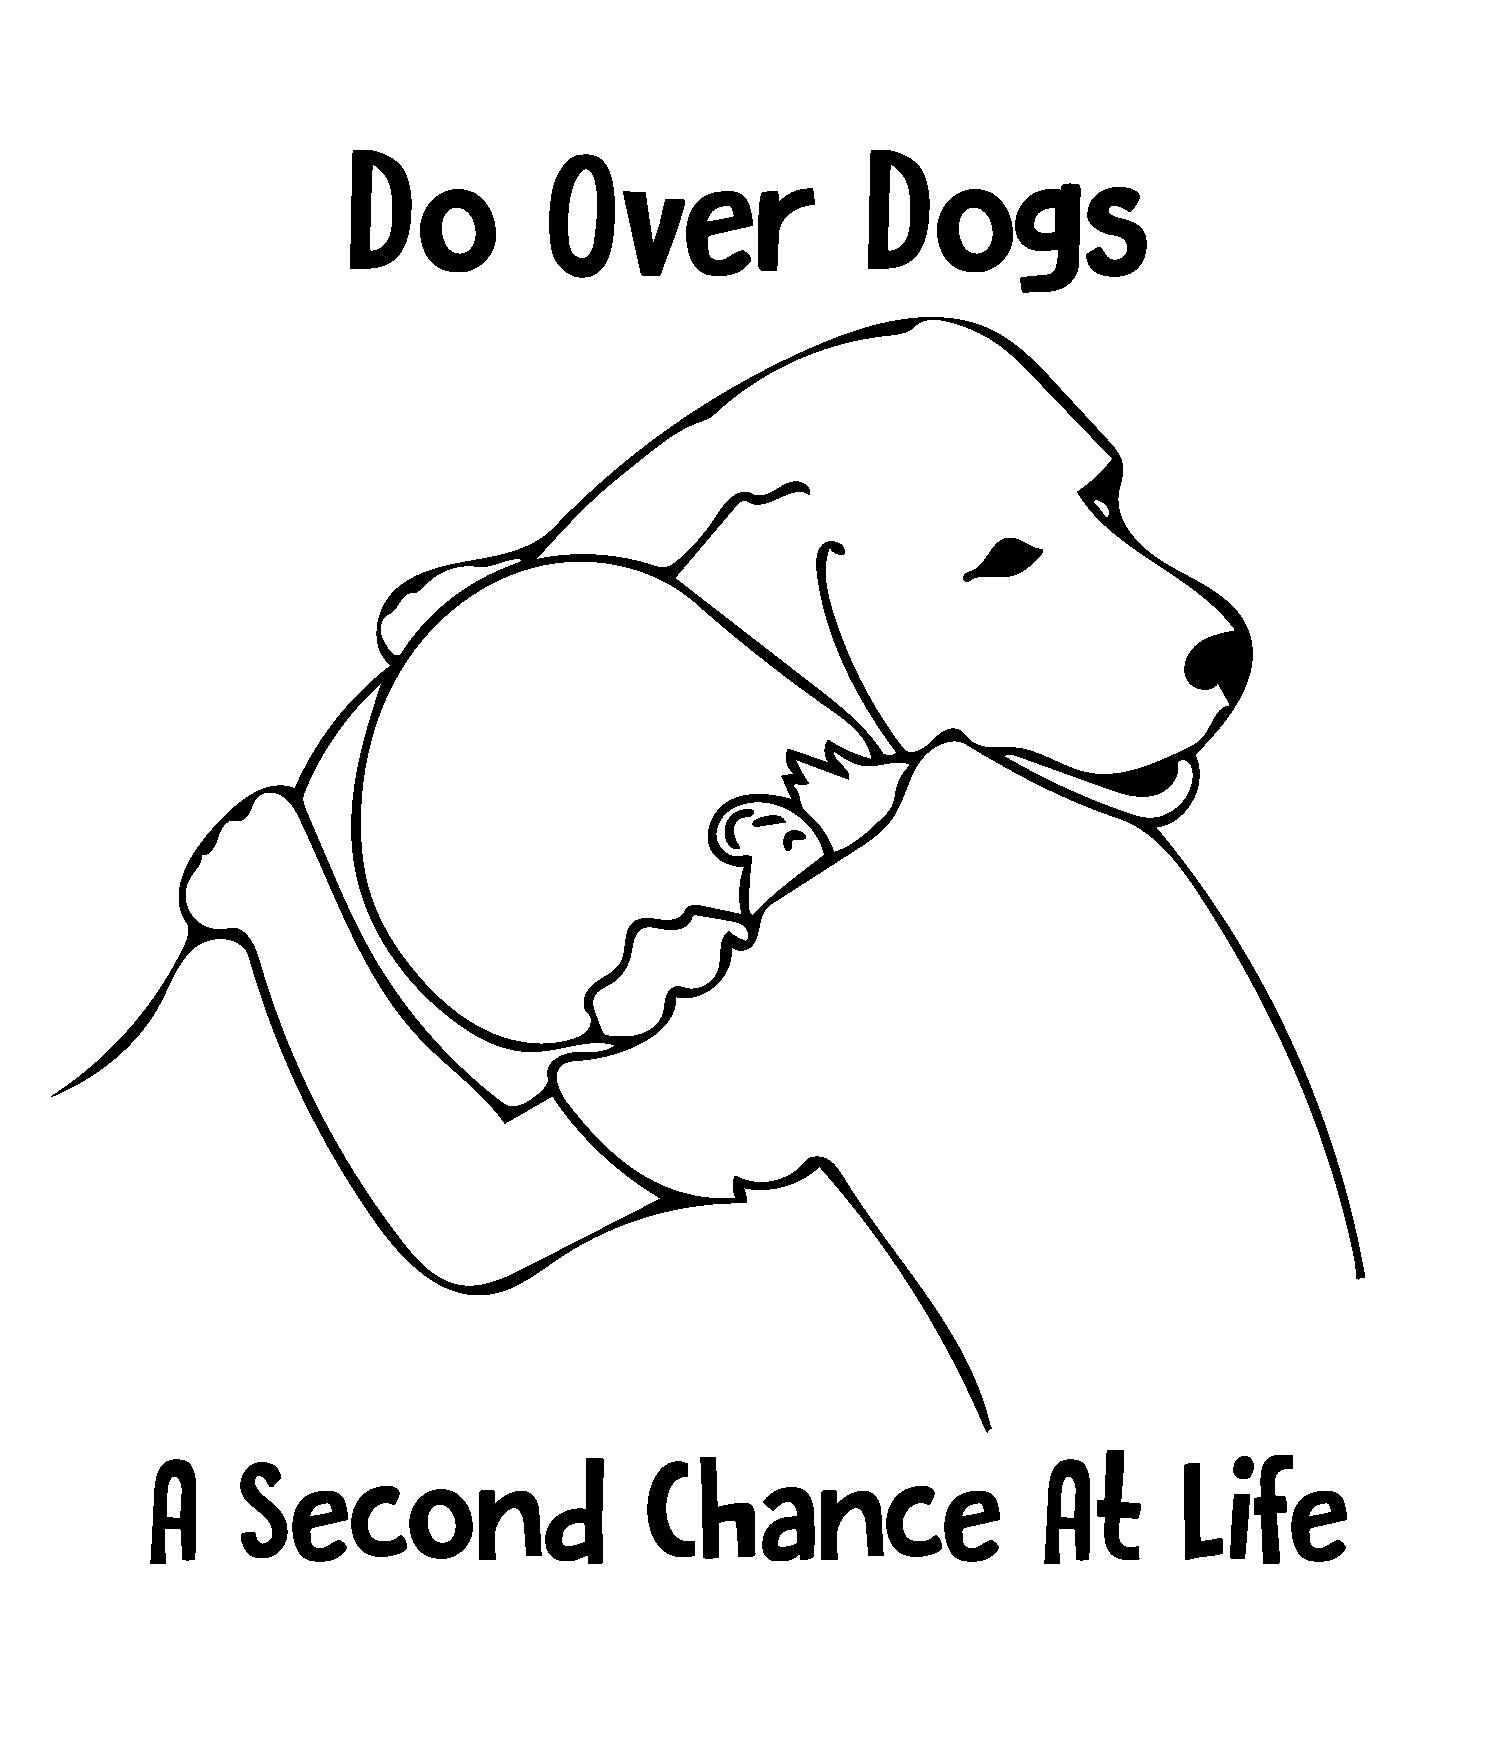 Do Over Dogs - A Second Chance At Life